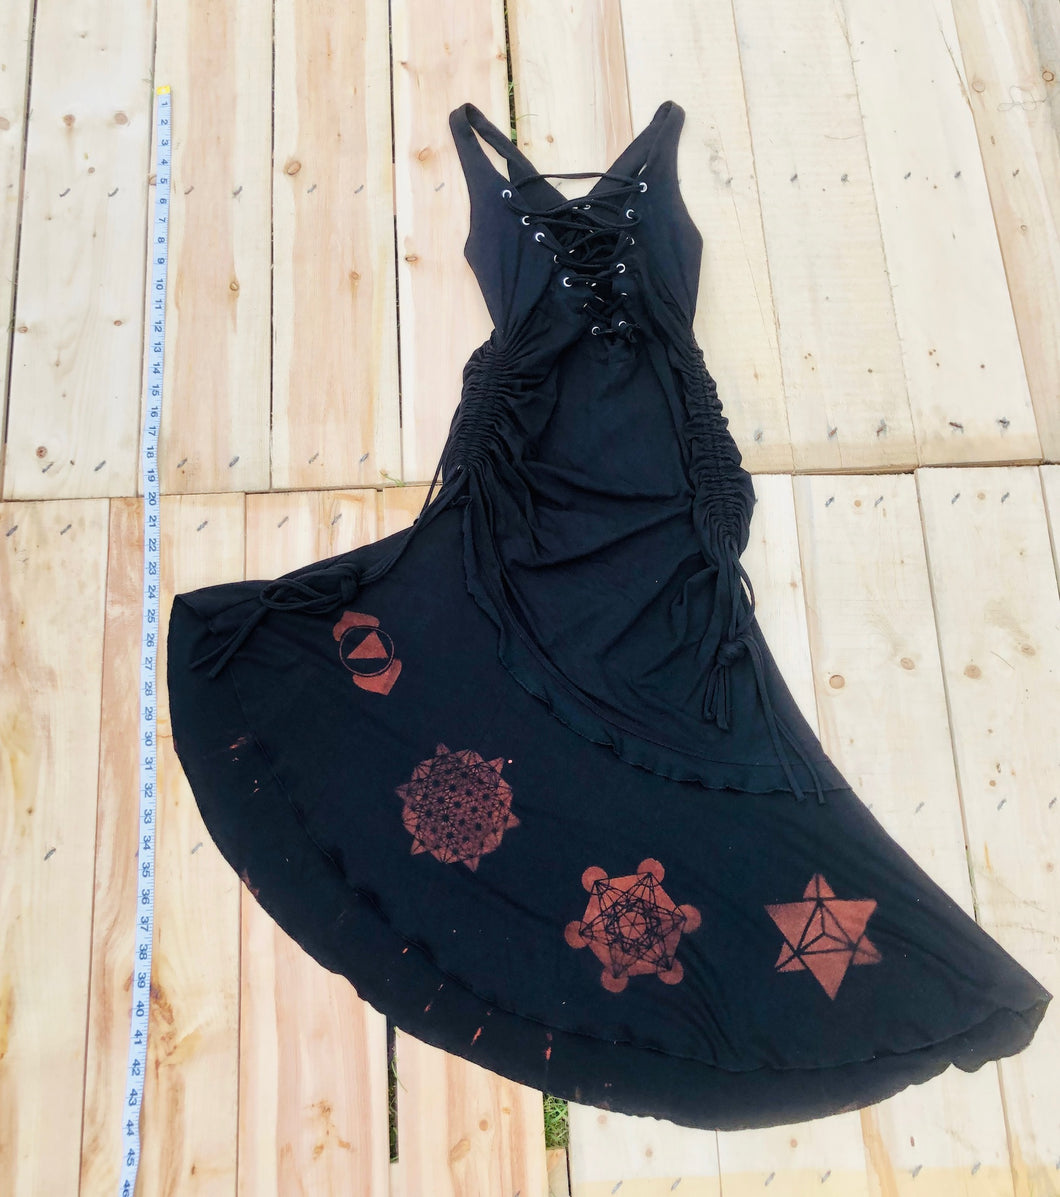 Large Black Maha Devi Sacred Geometry Dress One of a Kind